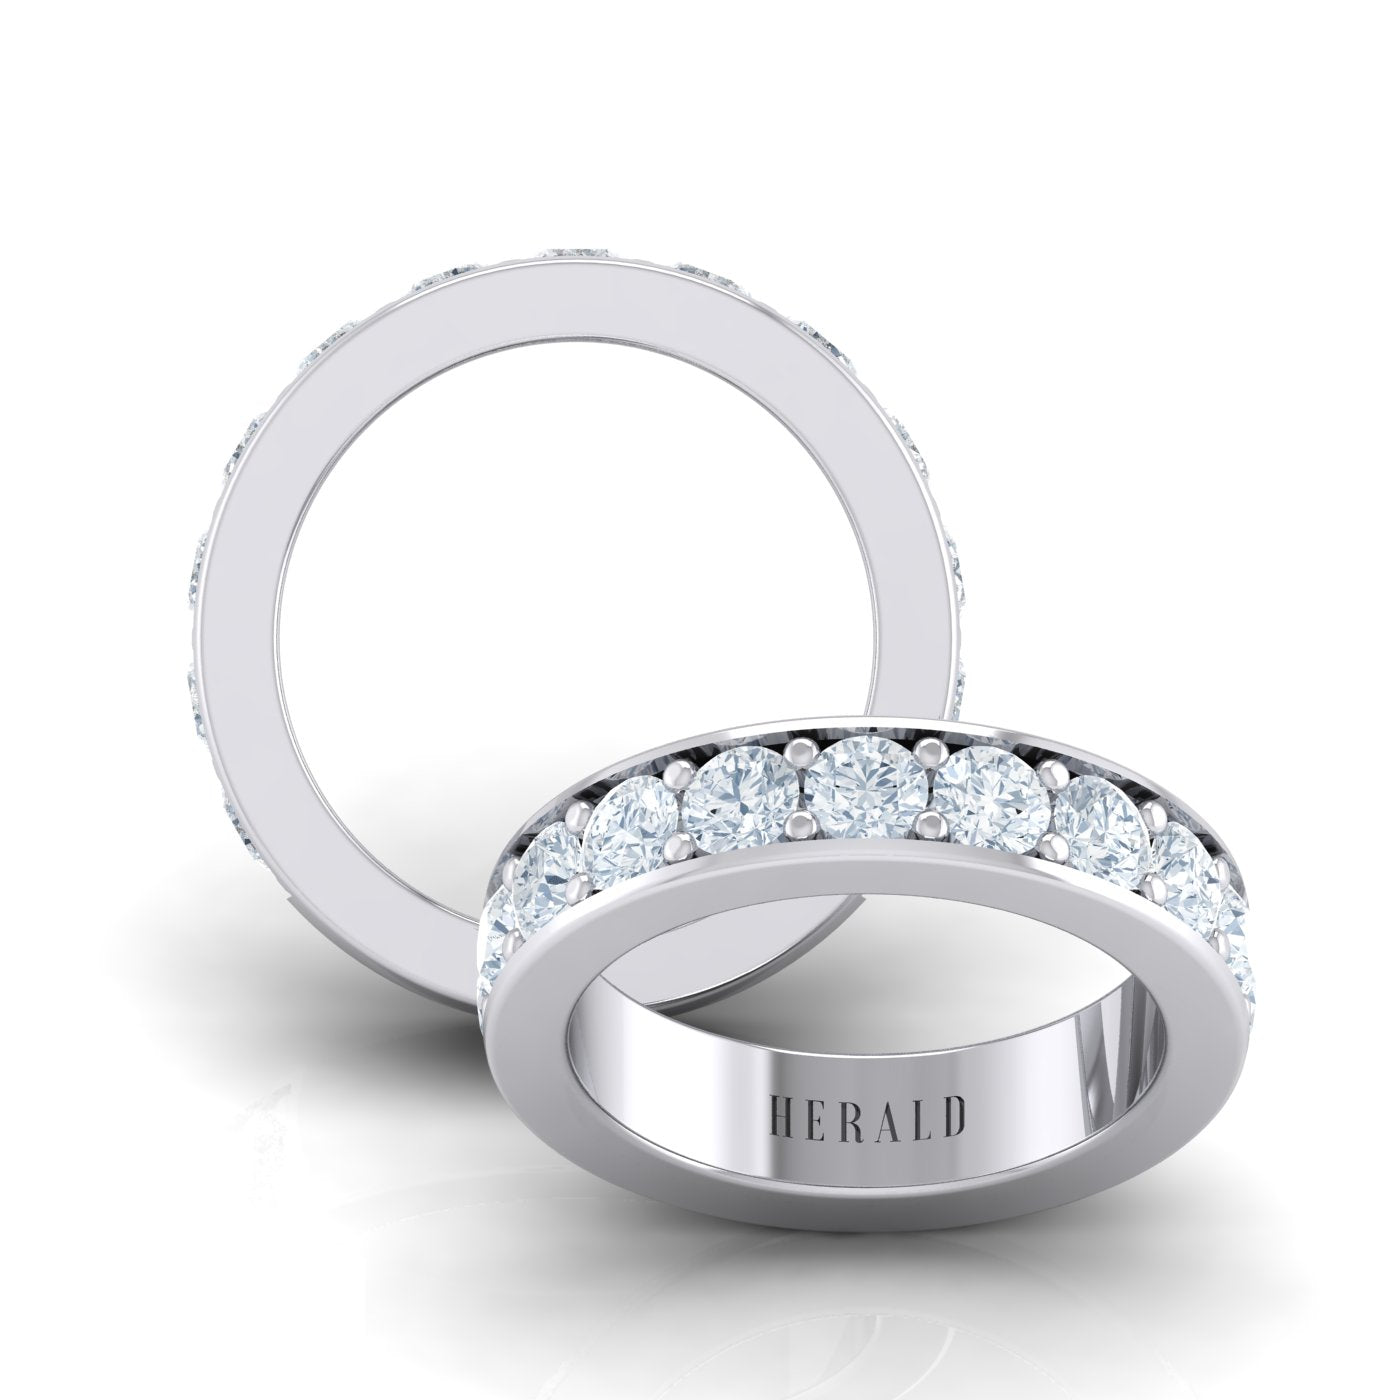 Herald diamond eternity ring